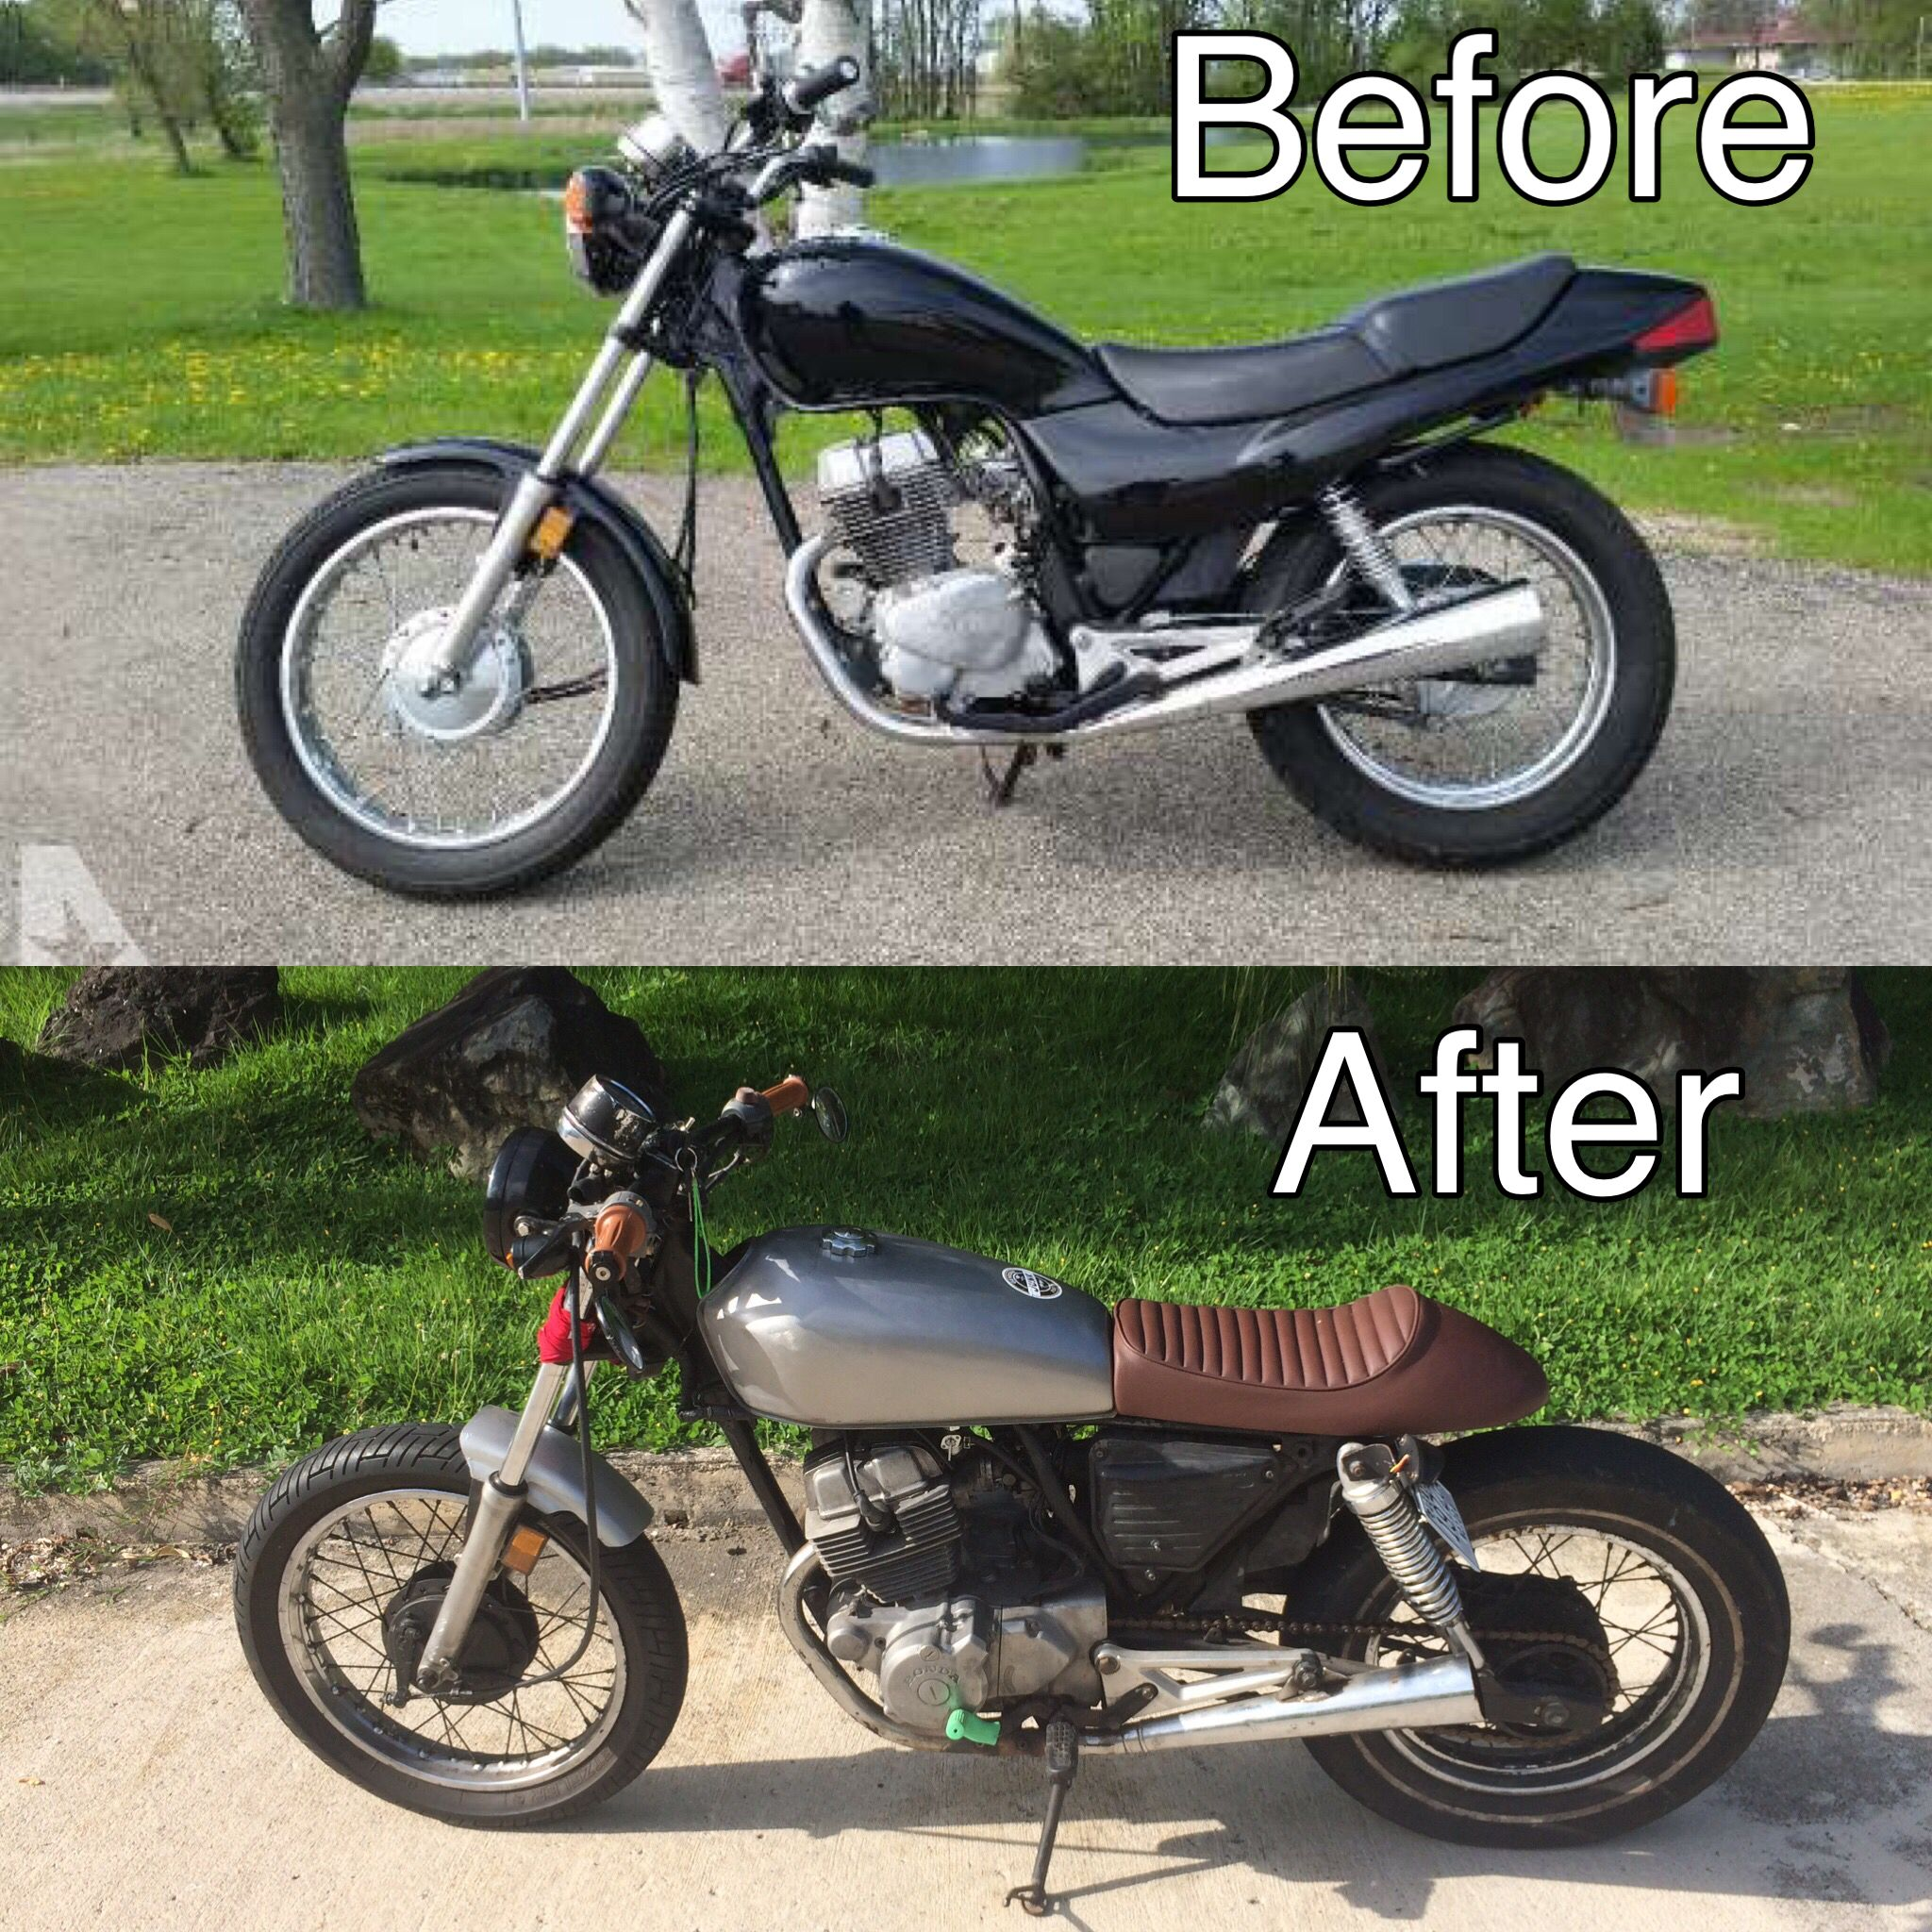 This Is My First Project Honda Cb250 Nighthawk Lots Of Fun Next A 750 Cafe Racer